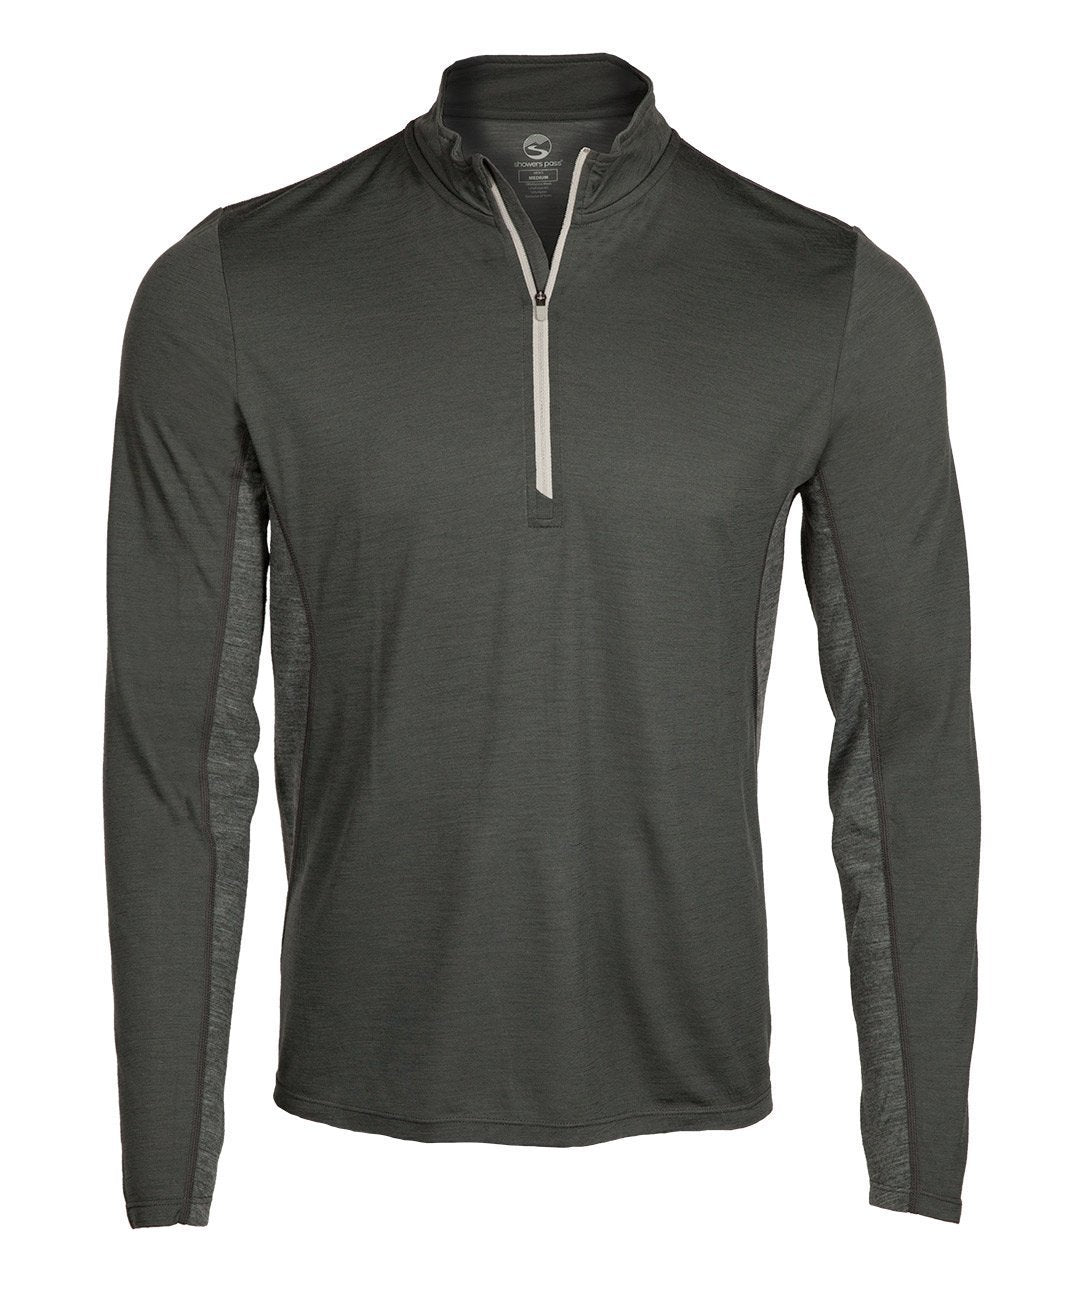 Men's Ridgeline Half-Zip LS Shirt